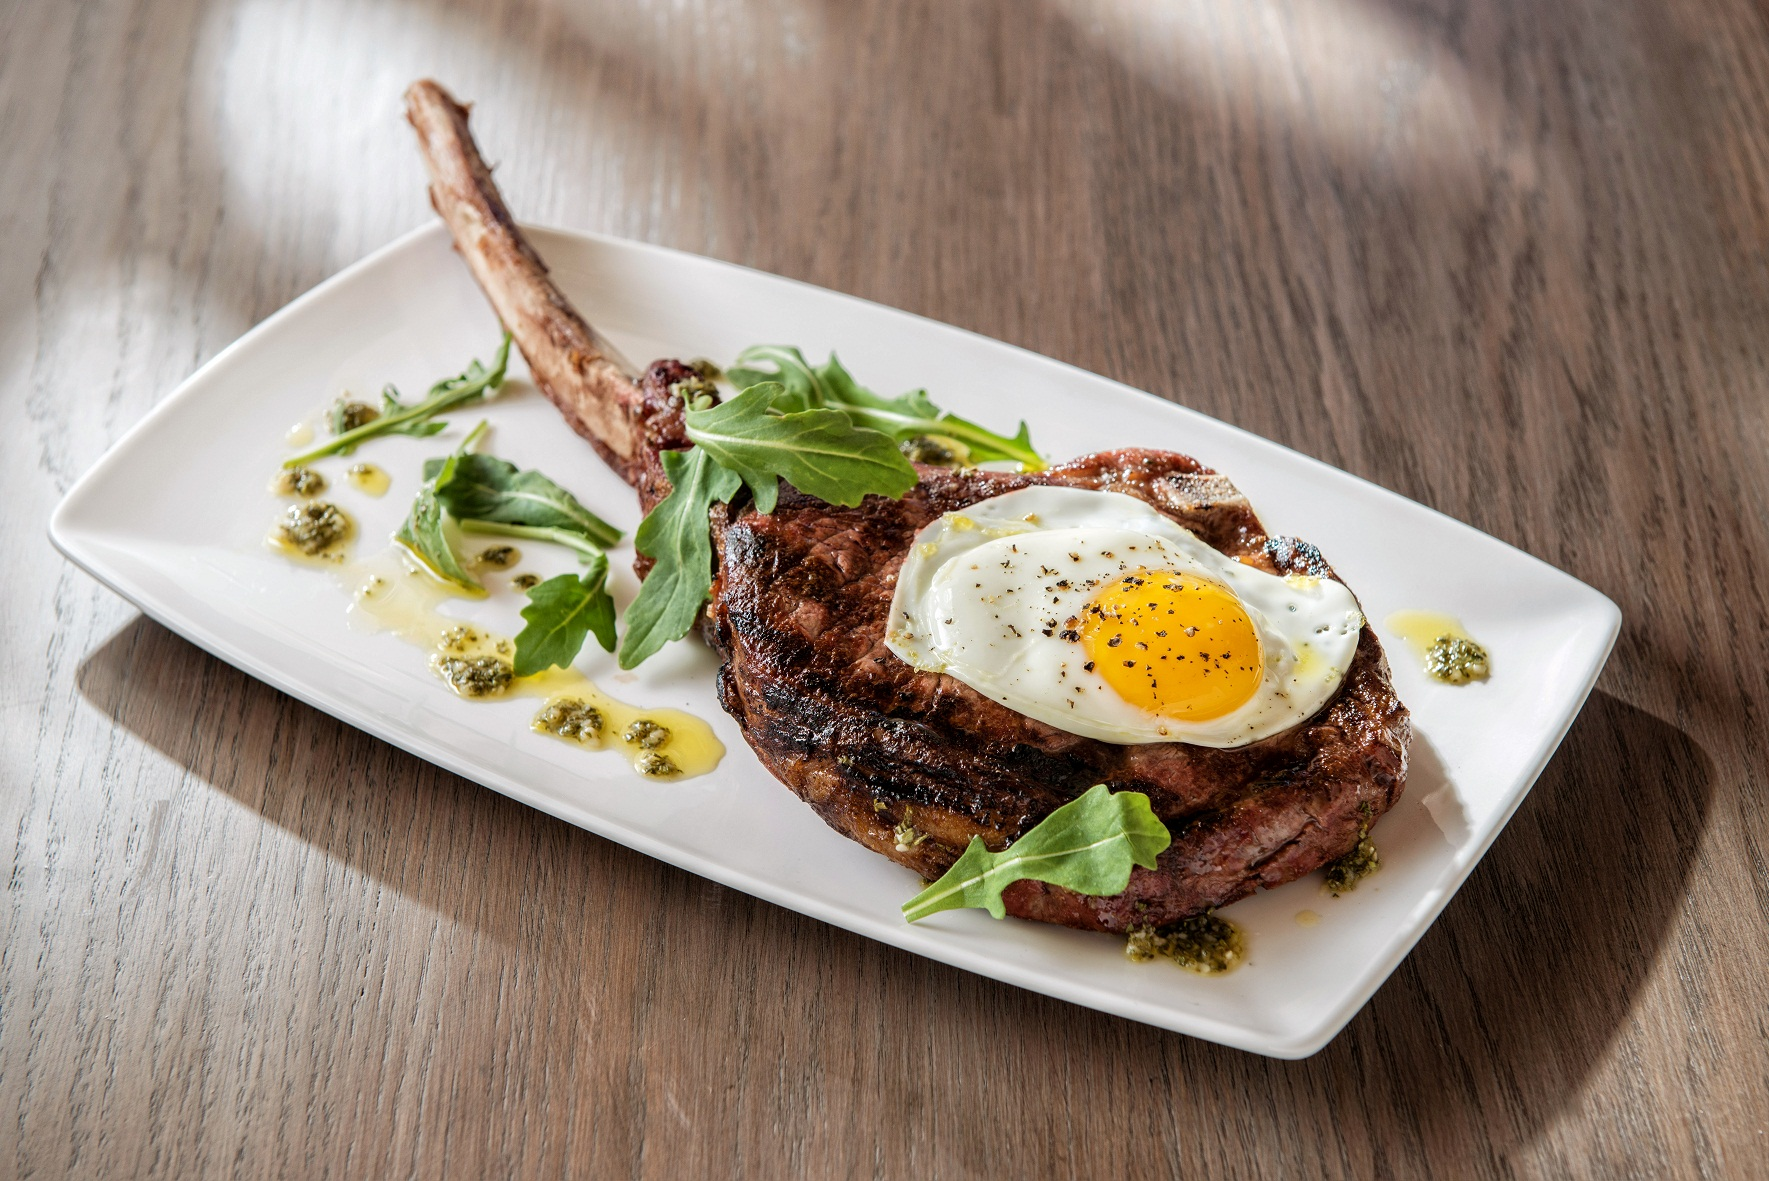 15 of the Most Epic Extreme Meat Dishes in Las Vegas